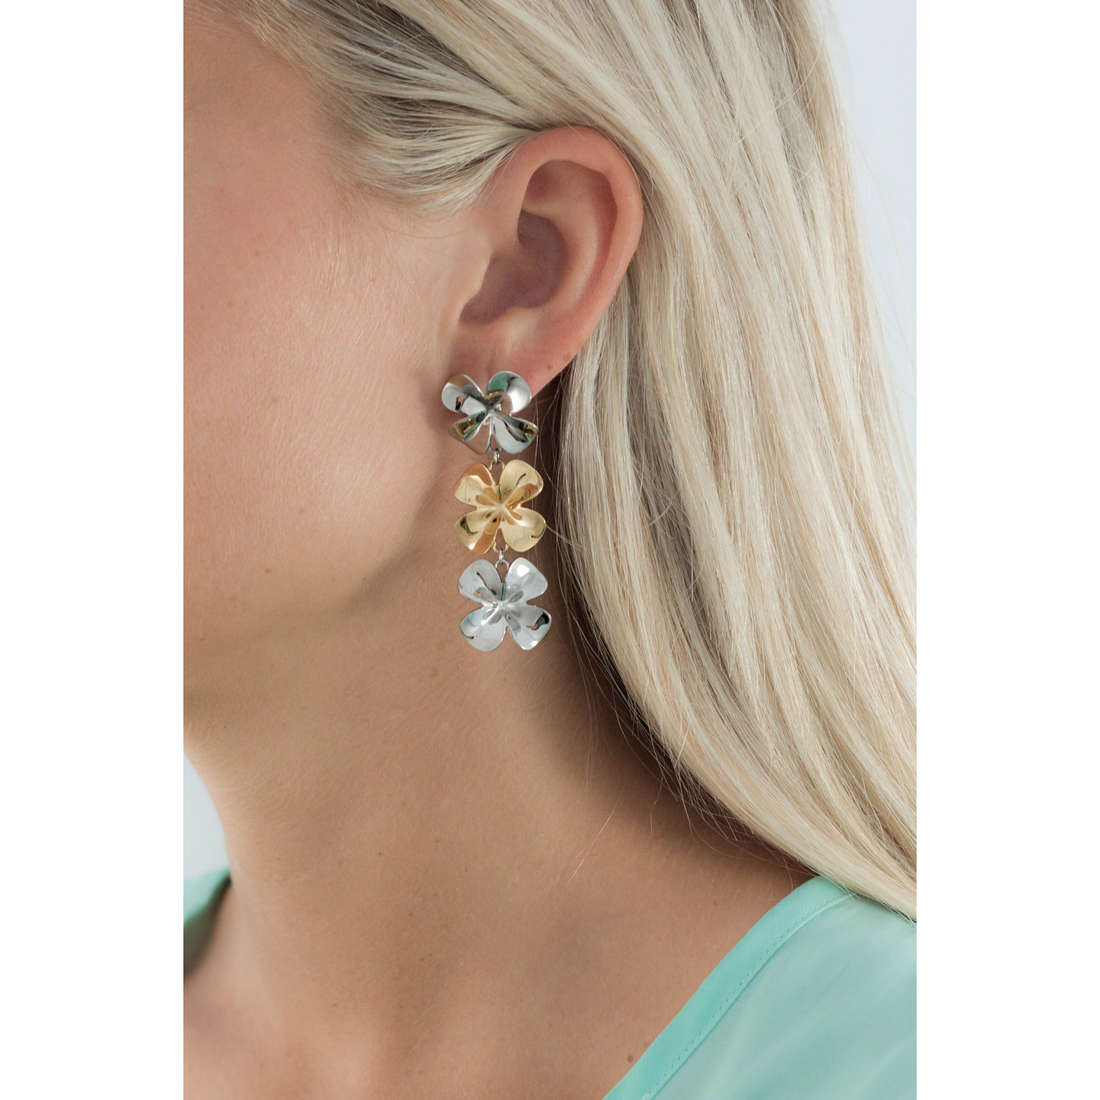 Brosway boucles d'oreille Jasmine femme BJN22 indosso